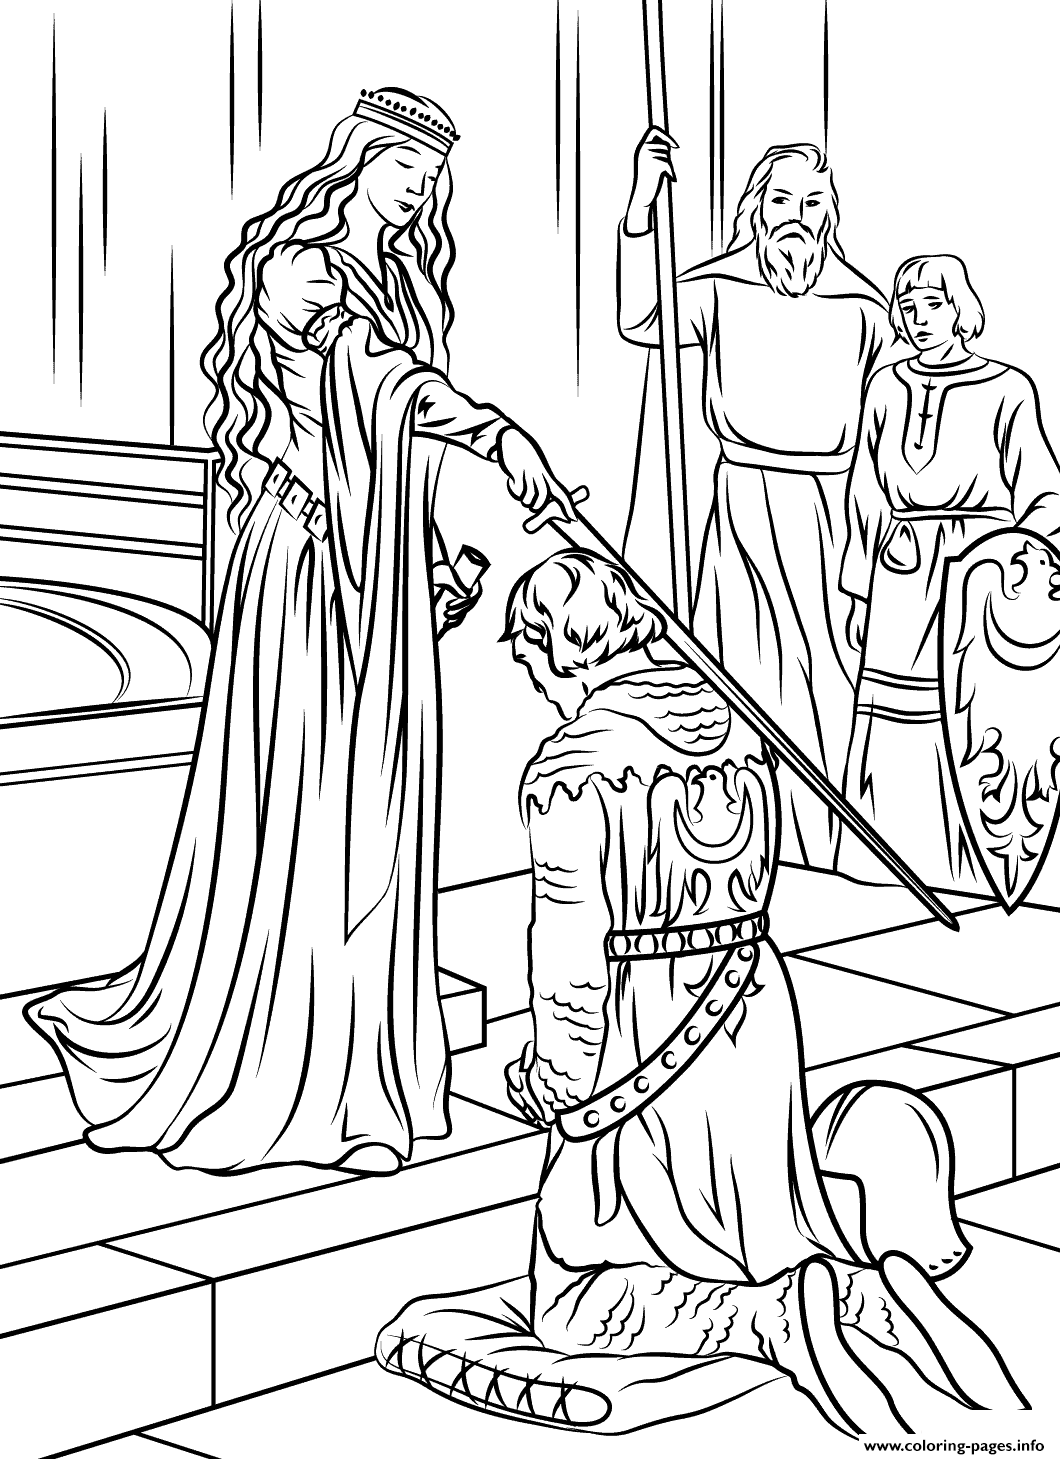 Pin by Ann Strandberg on Medieval Times | Medieval, Coloring pages ... | 1459x1060